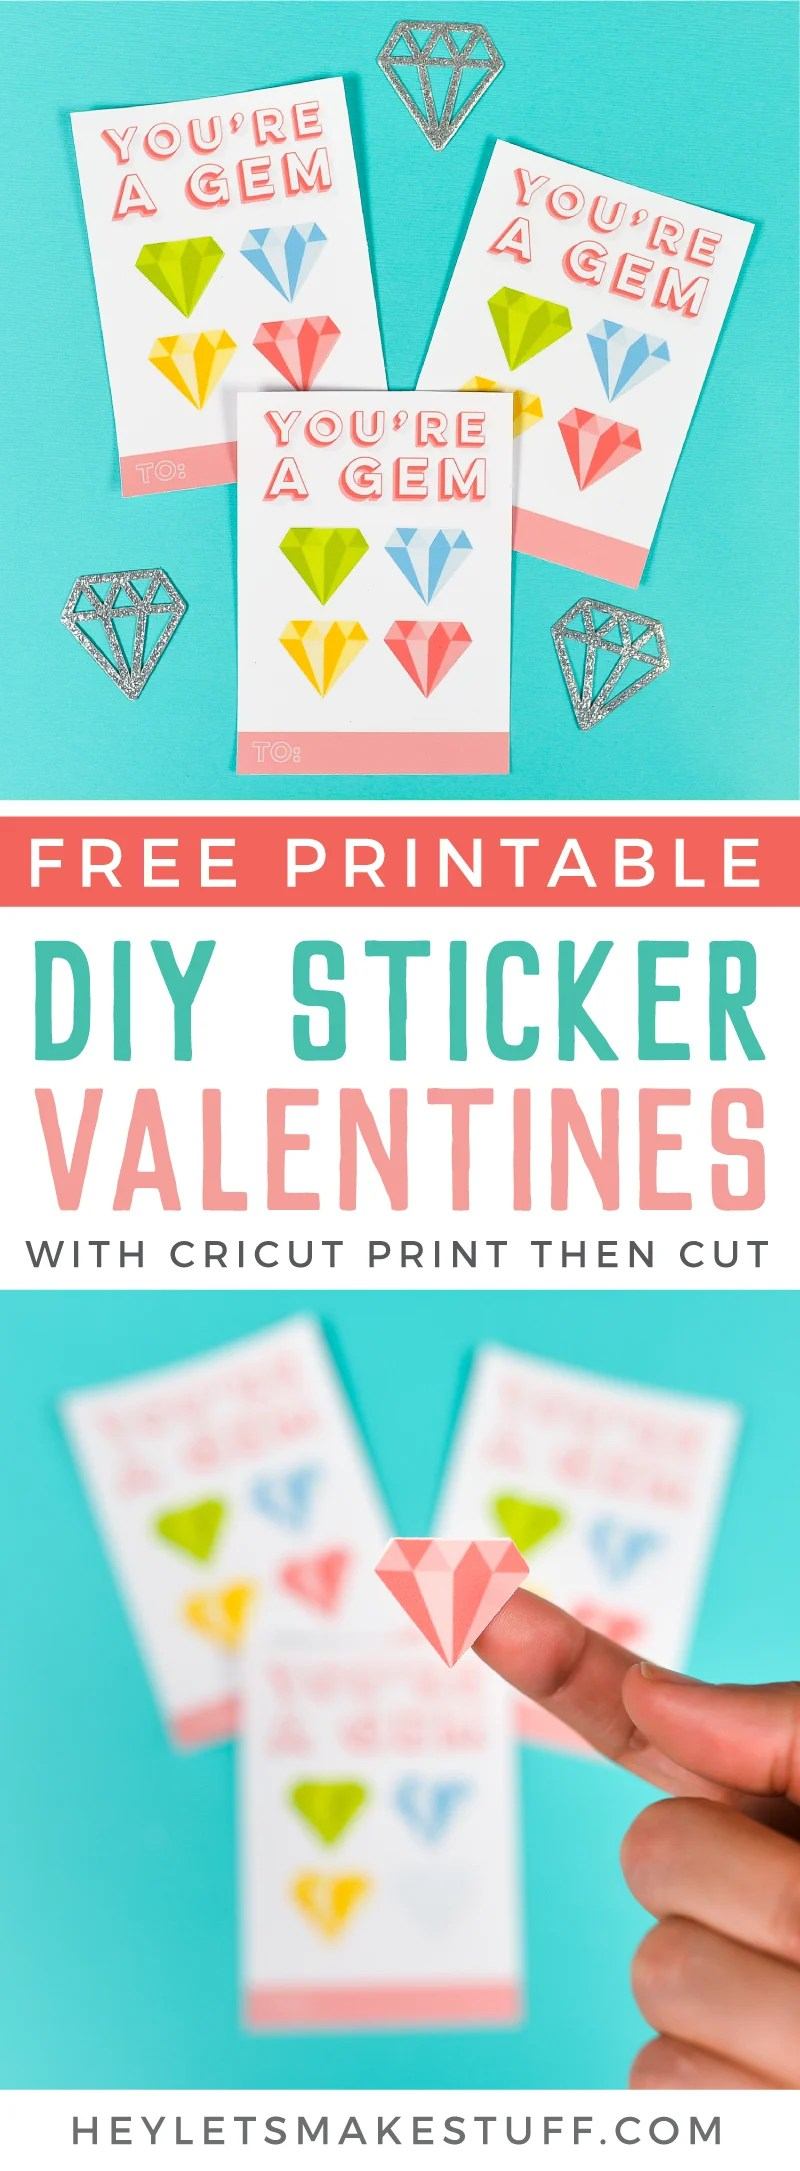 """Use the Print then Cut feature of your Cricut Explore or Maker to create this adorable """"you're a gem"""" DIY sticker valentines! They are a great non-food valentine—and who doesn't love getting stickers? Includes free download!"""